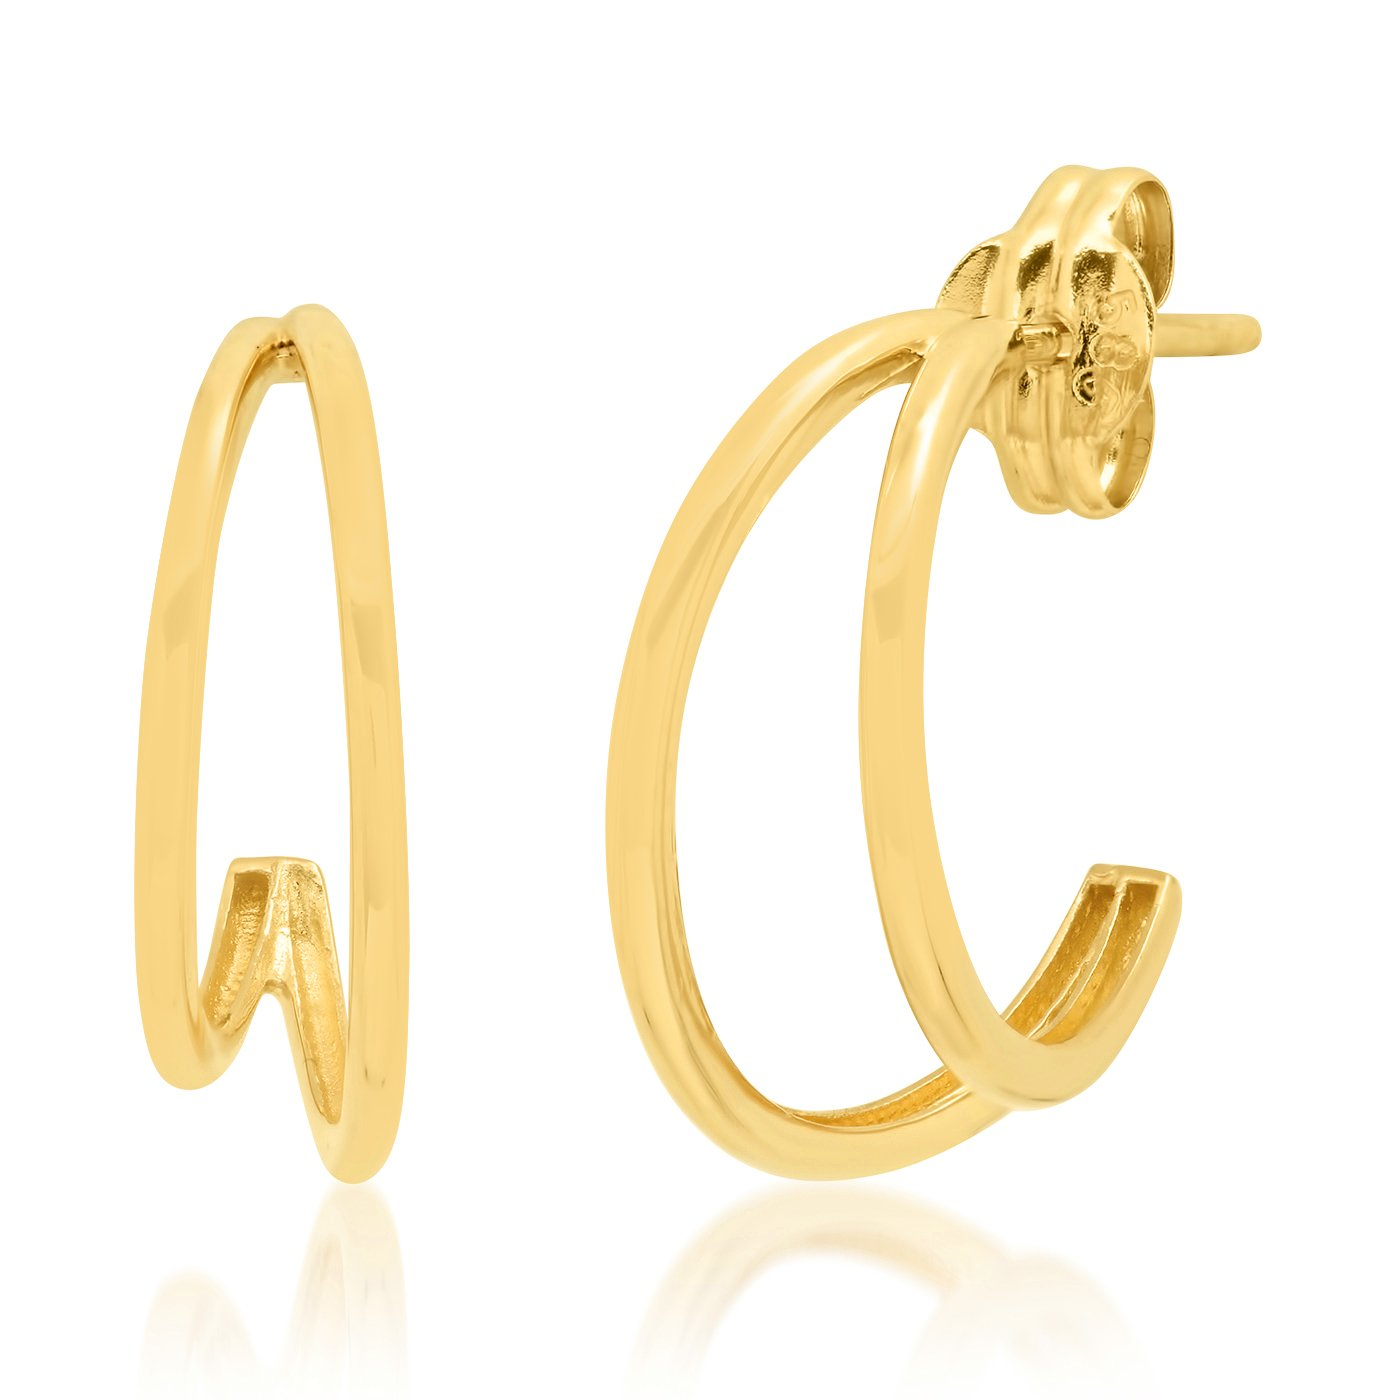 Tai 14k Gold Split Hoop Earrings